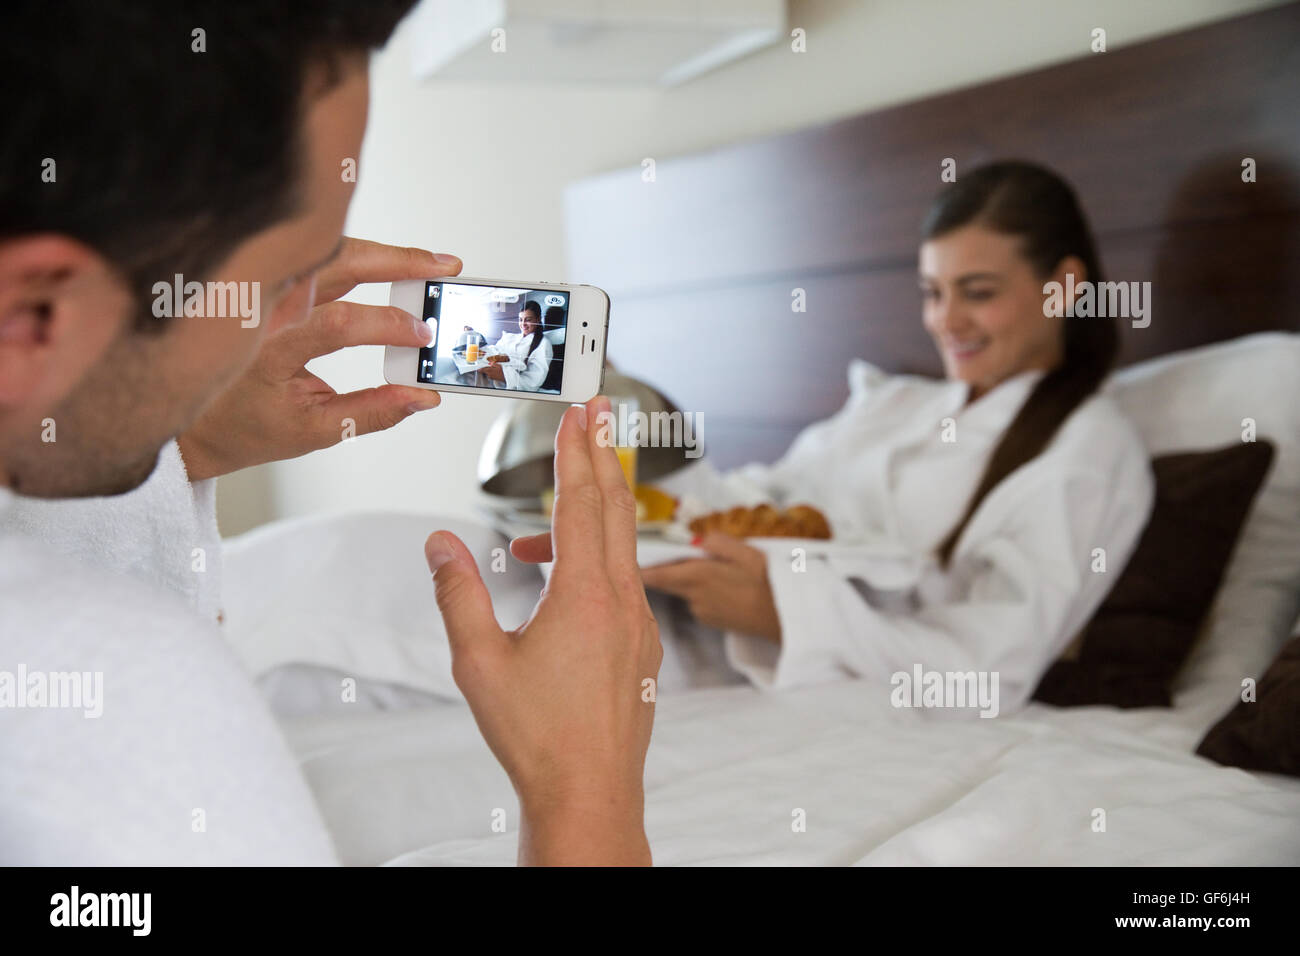 Man taking a photo of woman in hotel room. - Stock Image